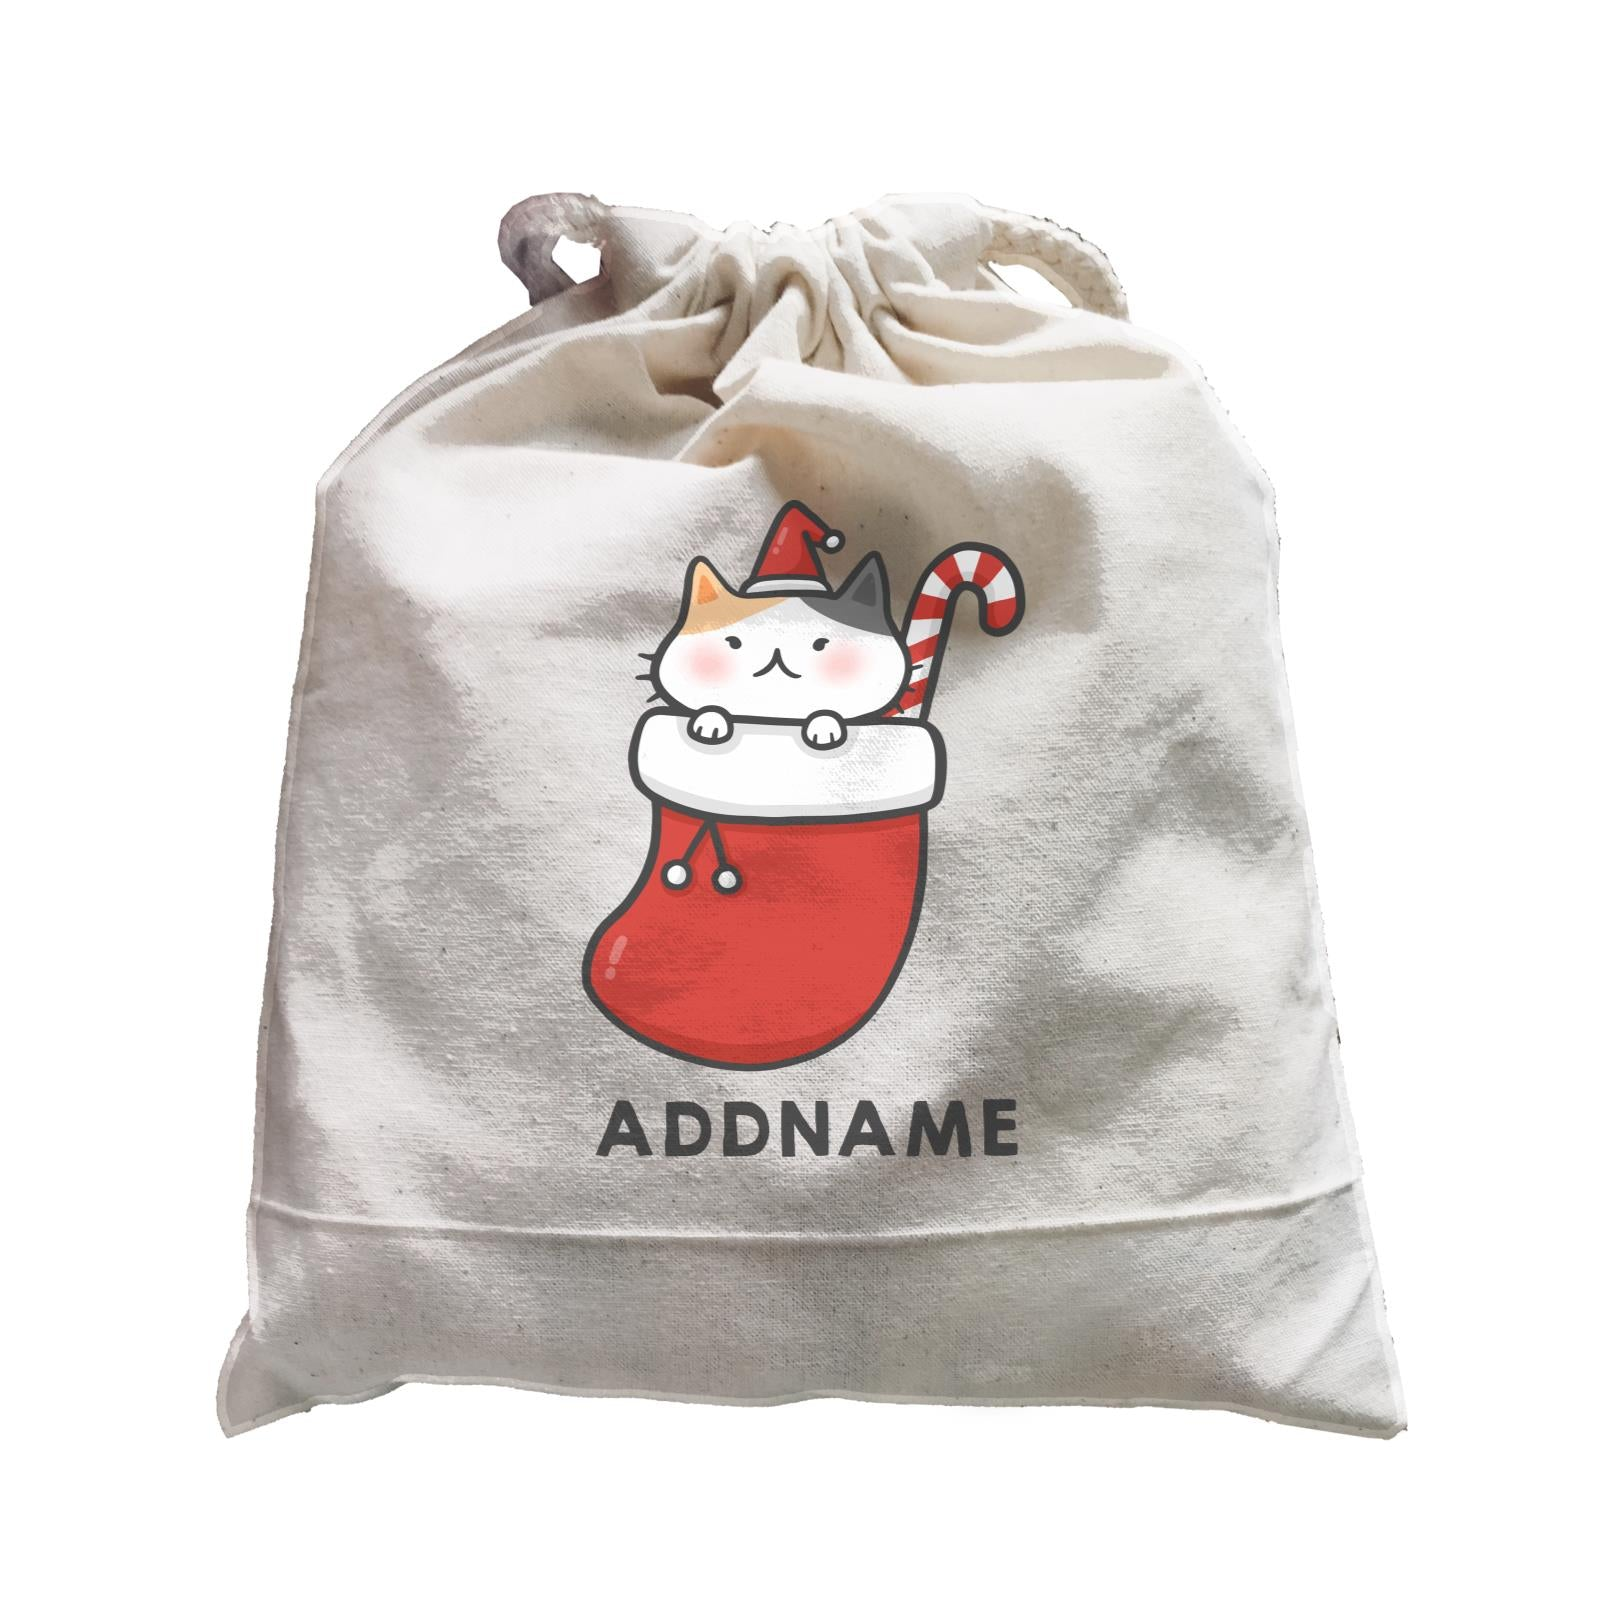 Xmas Cute Cat In Christmas Sock Addname Accessories Satchel